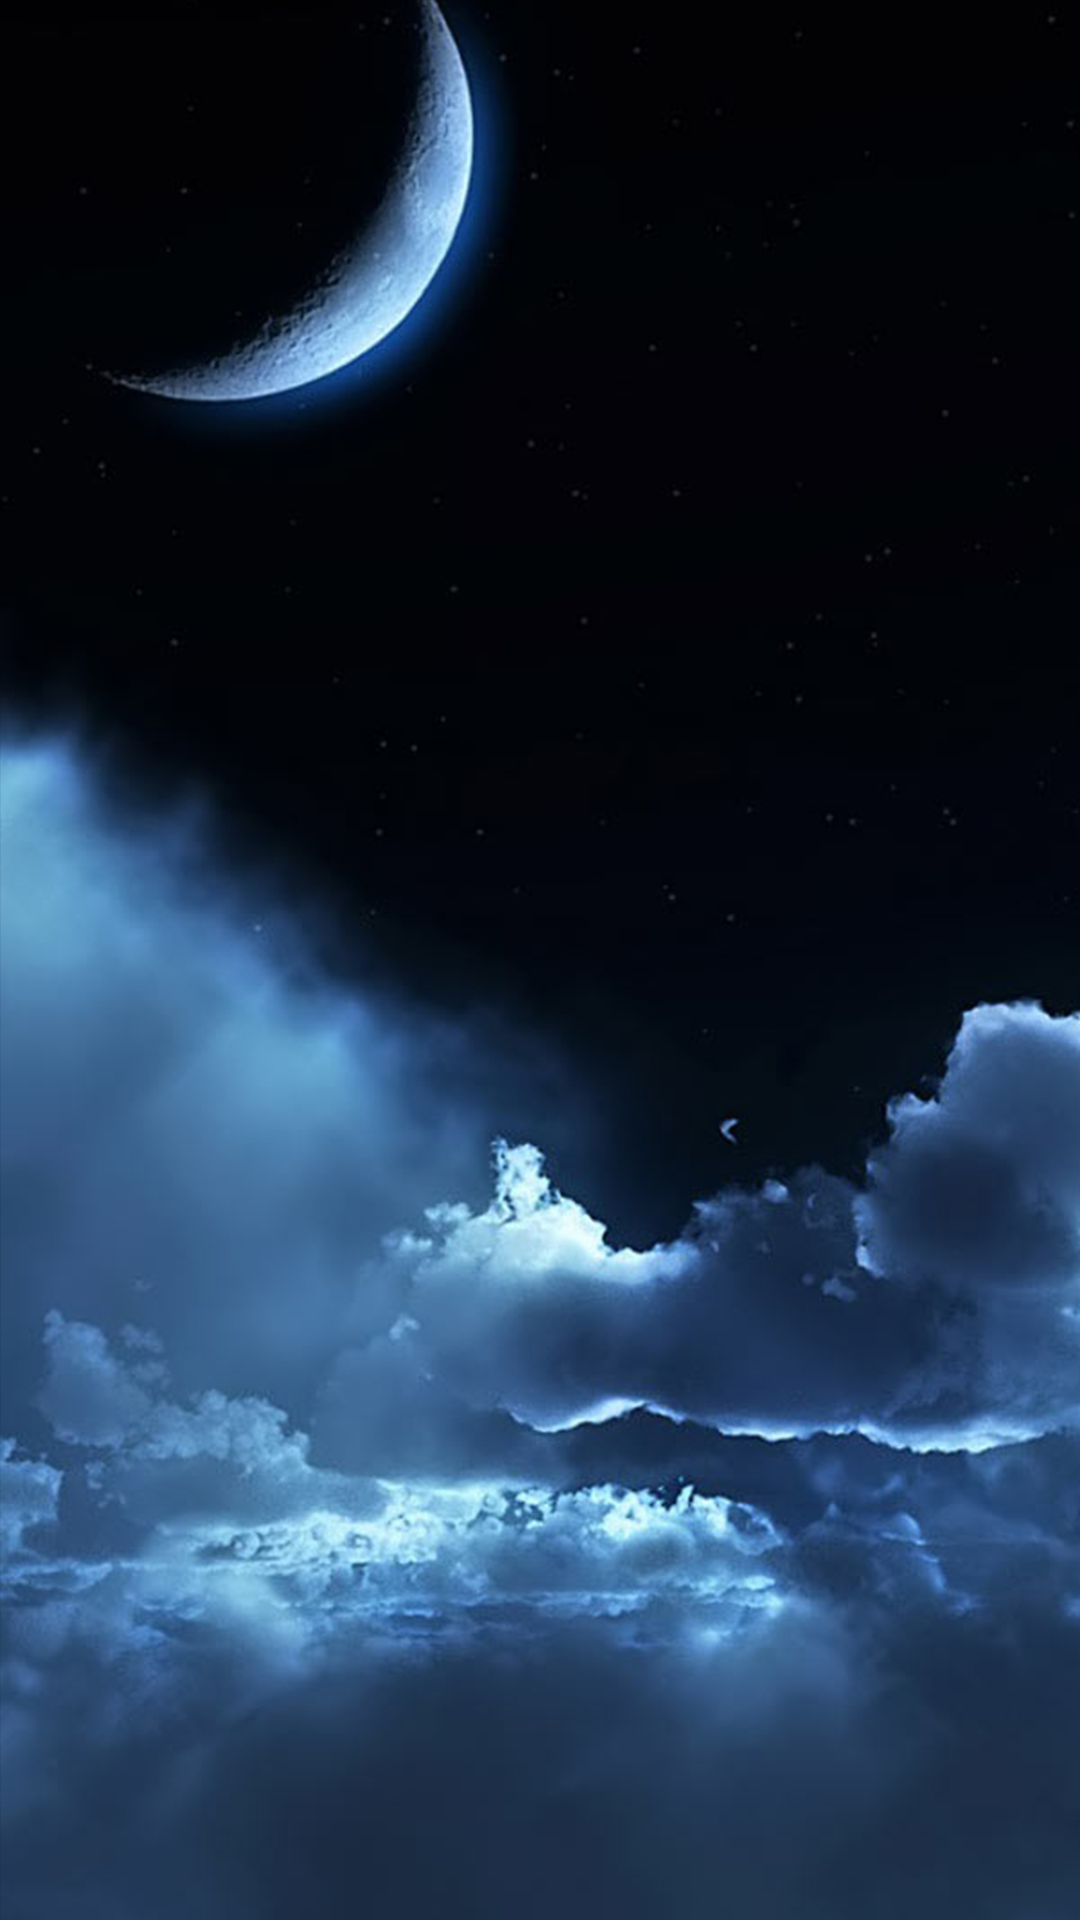 Ultra Hd Night Sky Wallpaper For Your Mobile Phone 0189